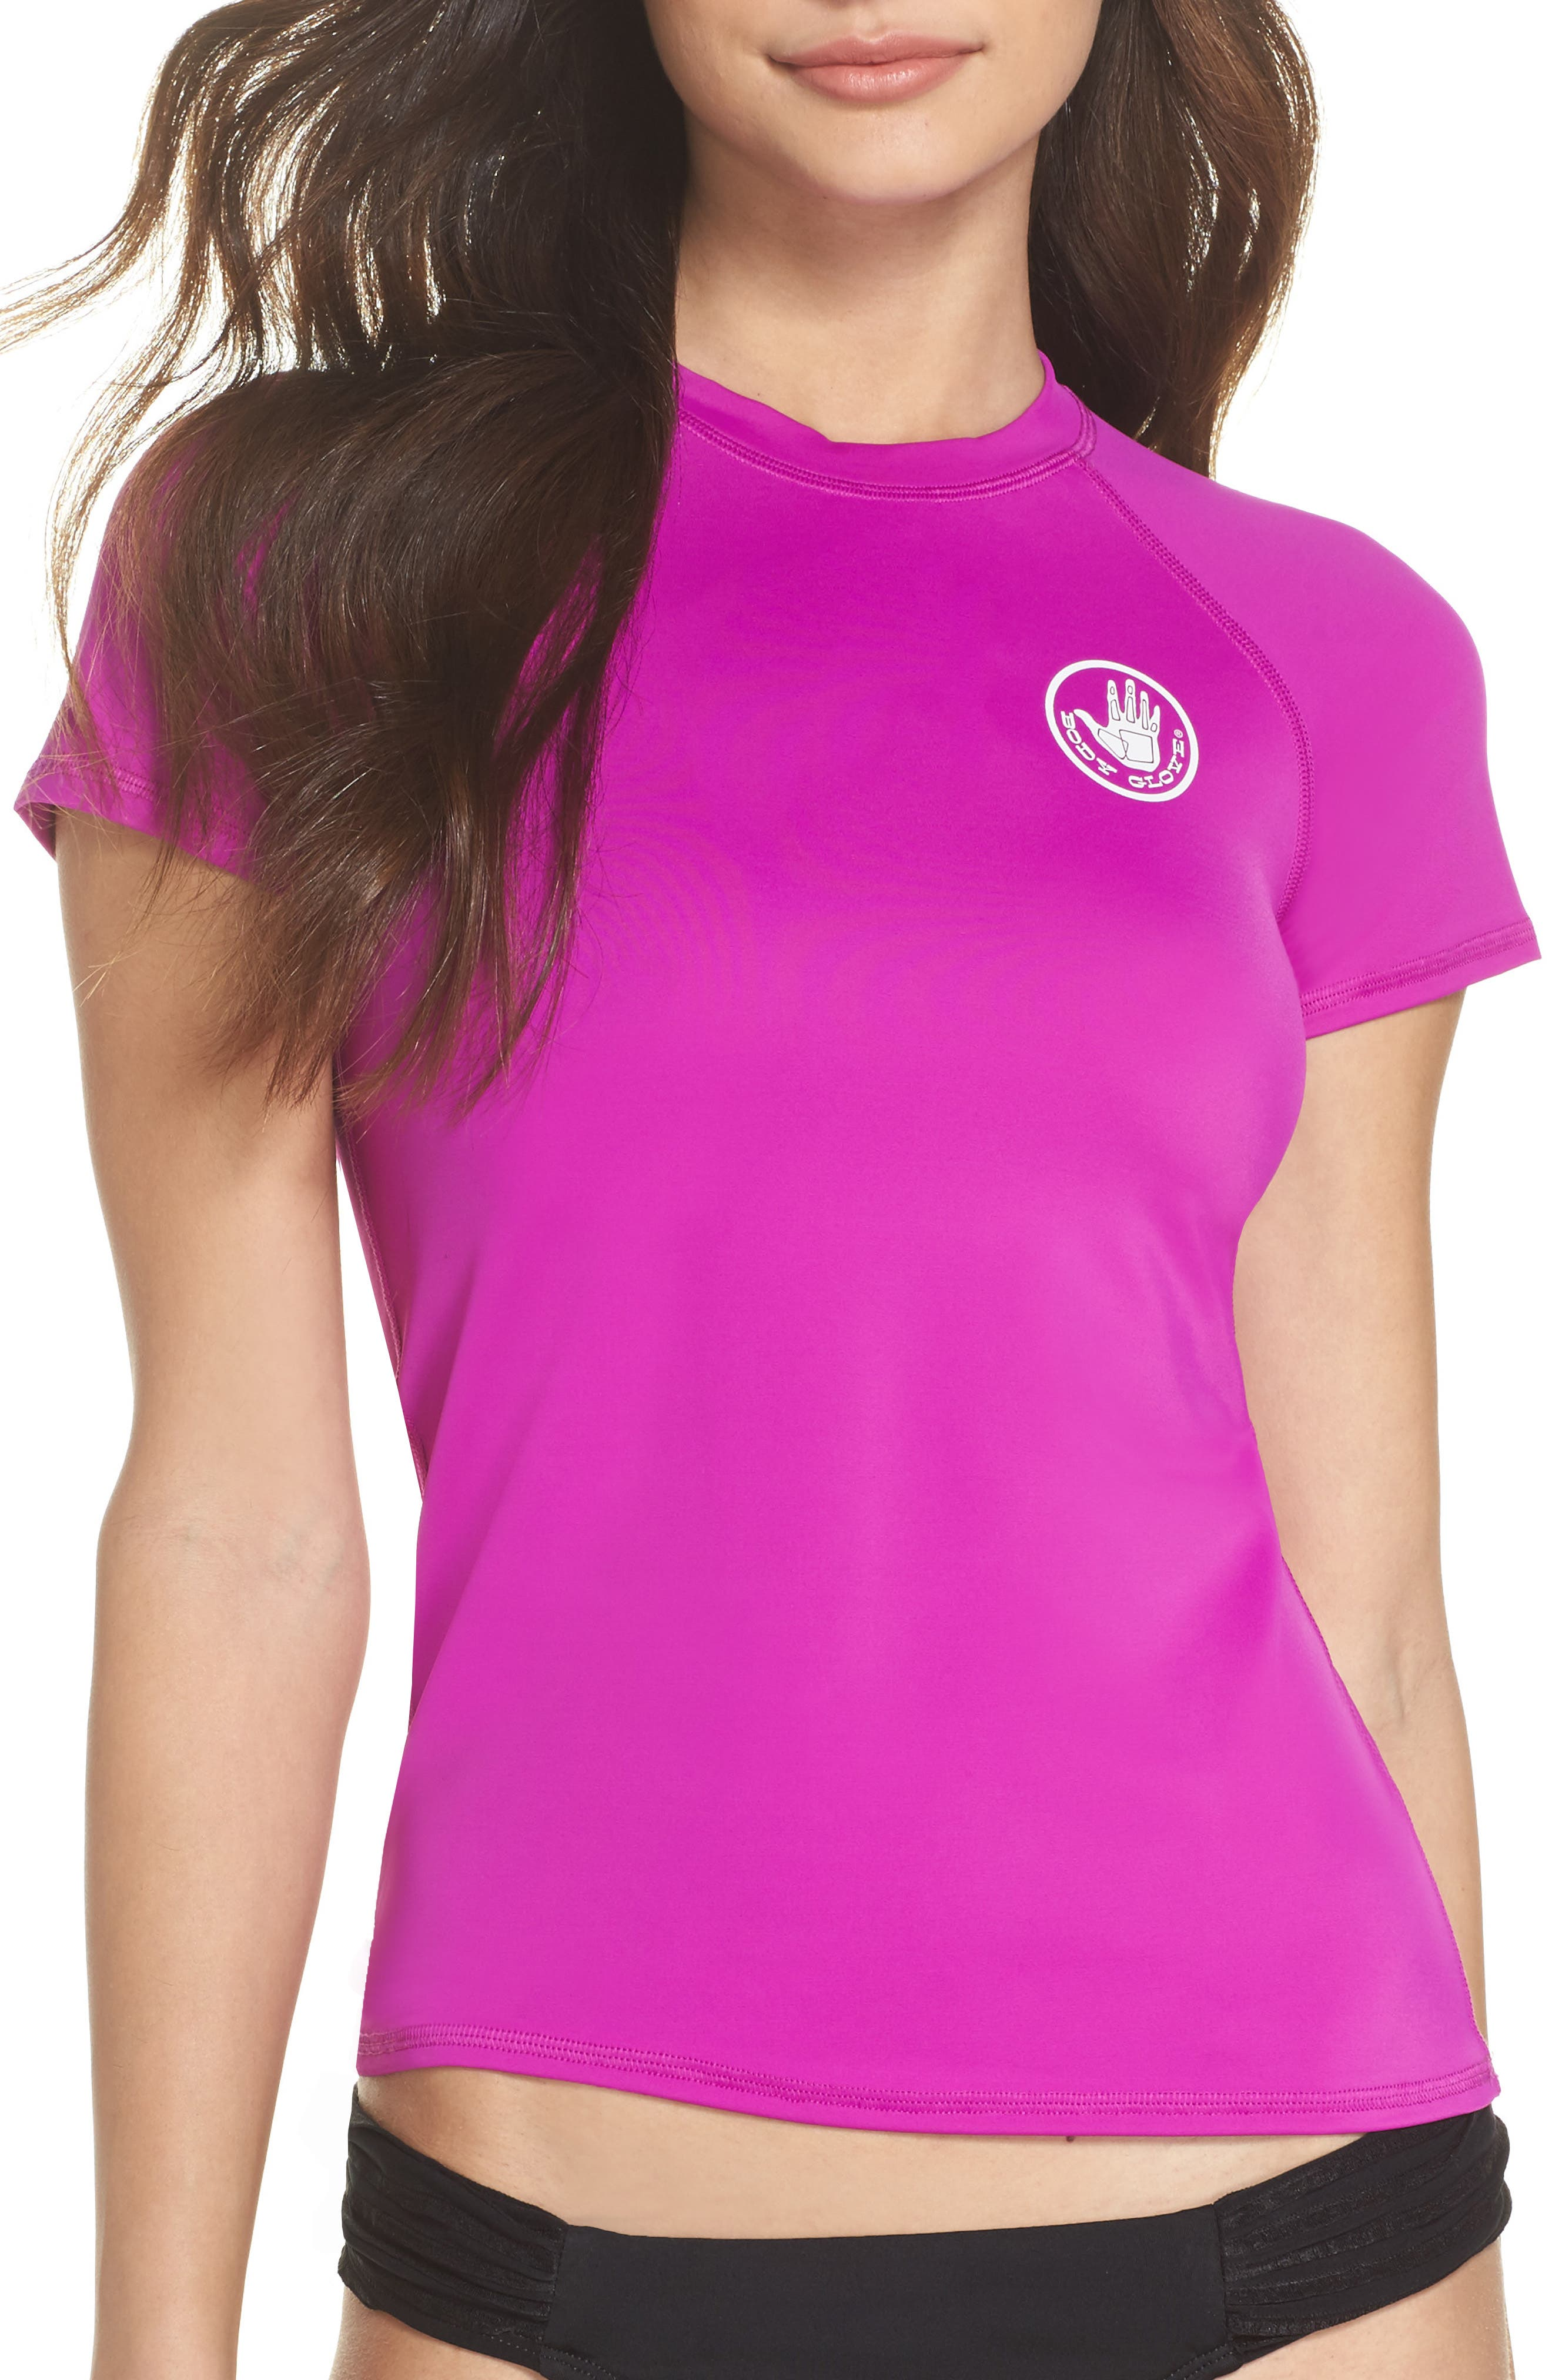 'Smoothies in Motion' Short Sleeve Rashguard,                             Main thumbnail 1, color,                             Magnolia